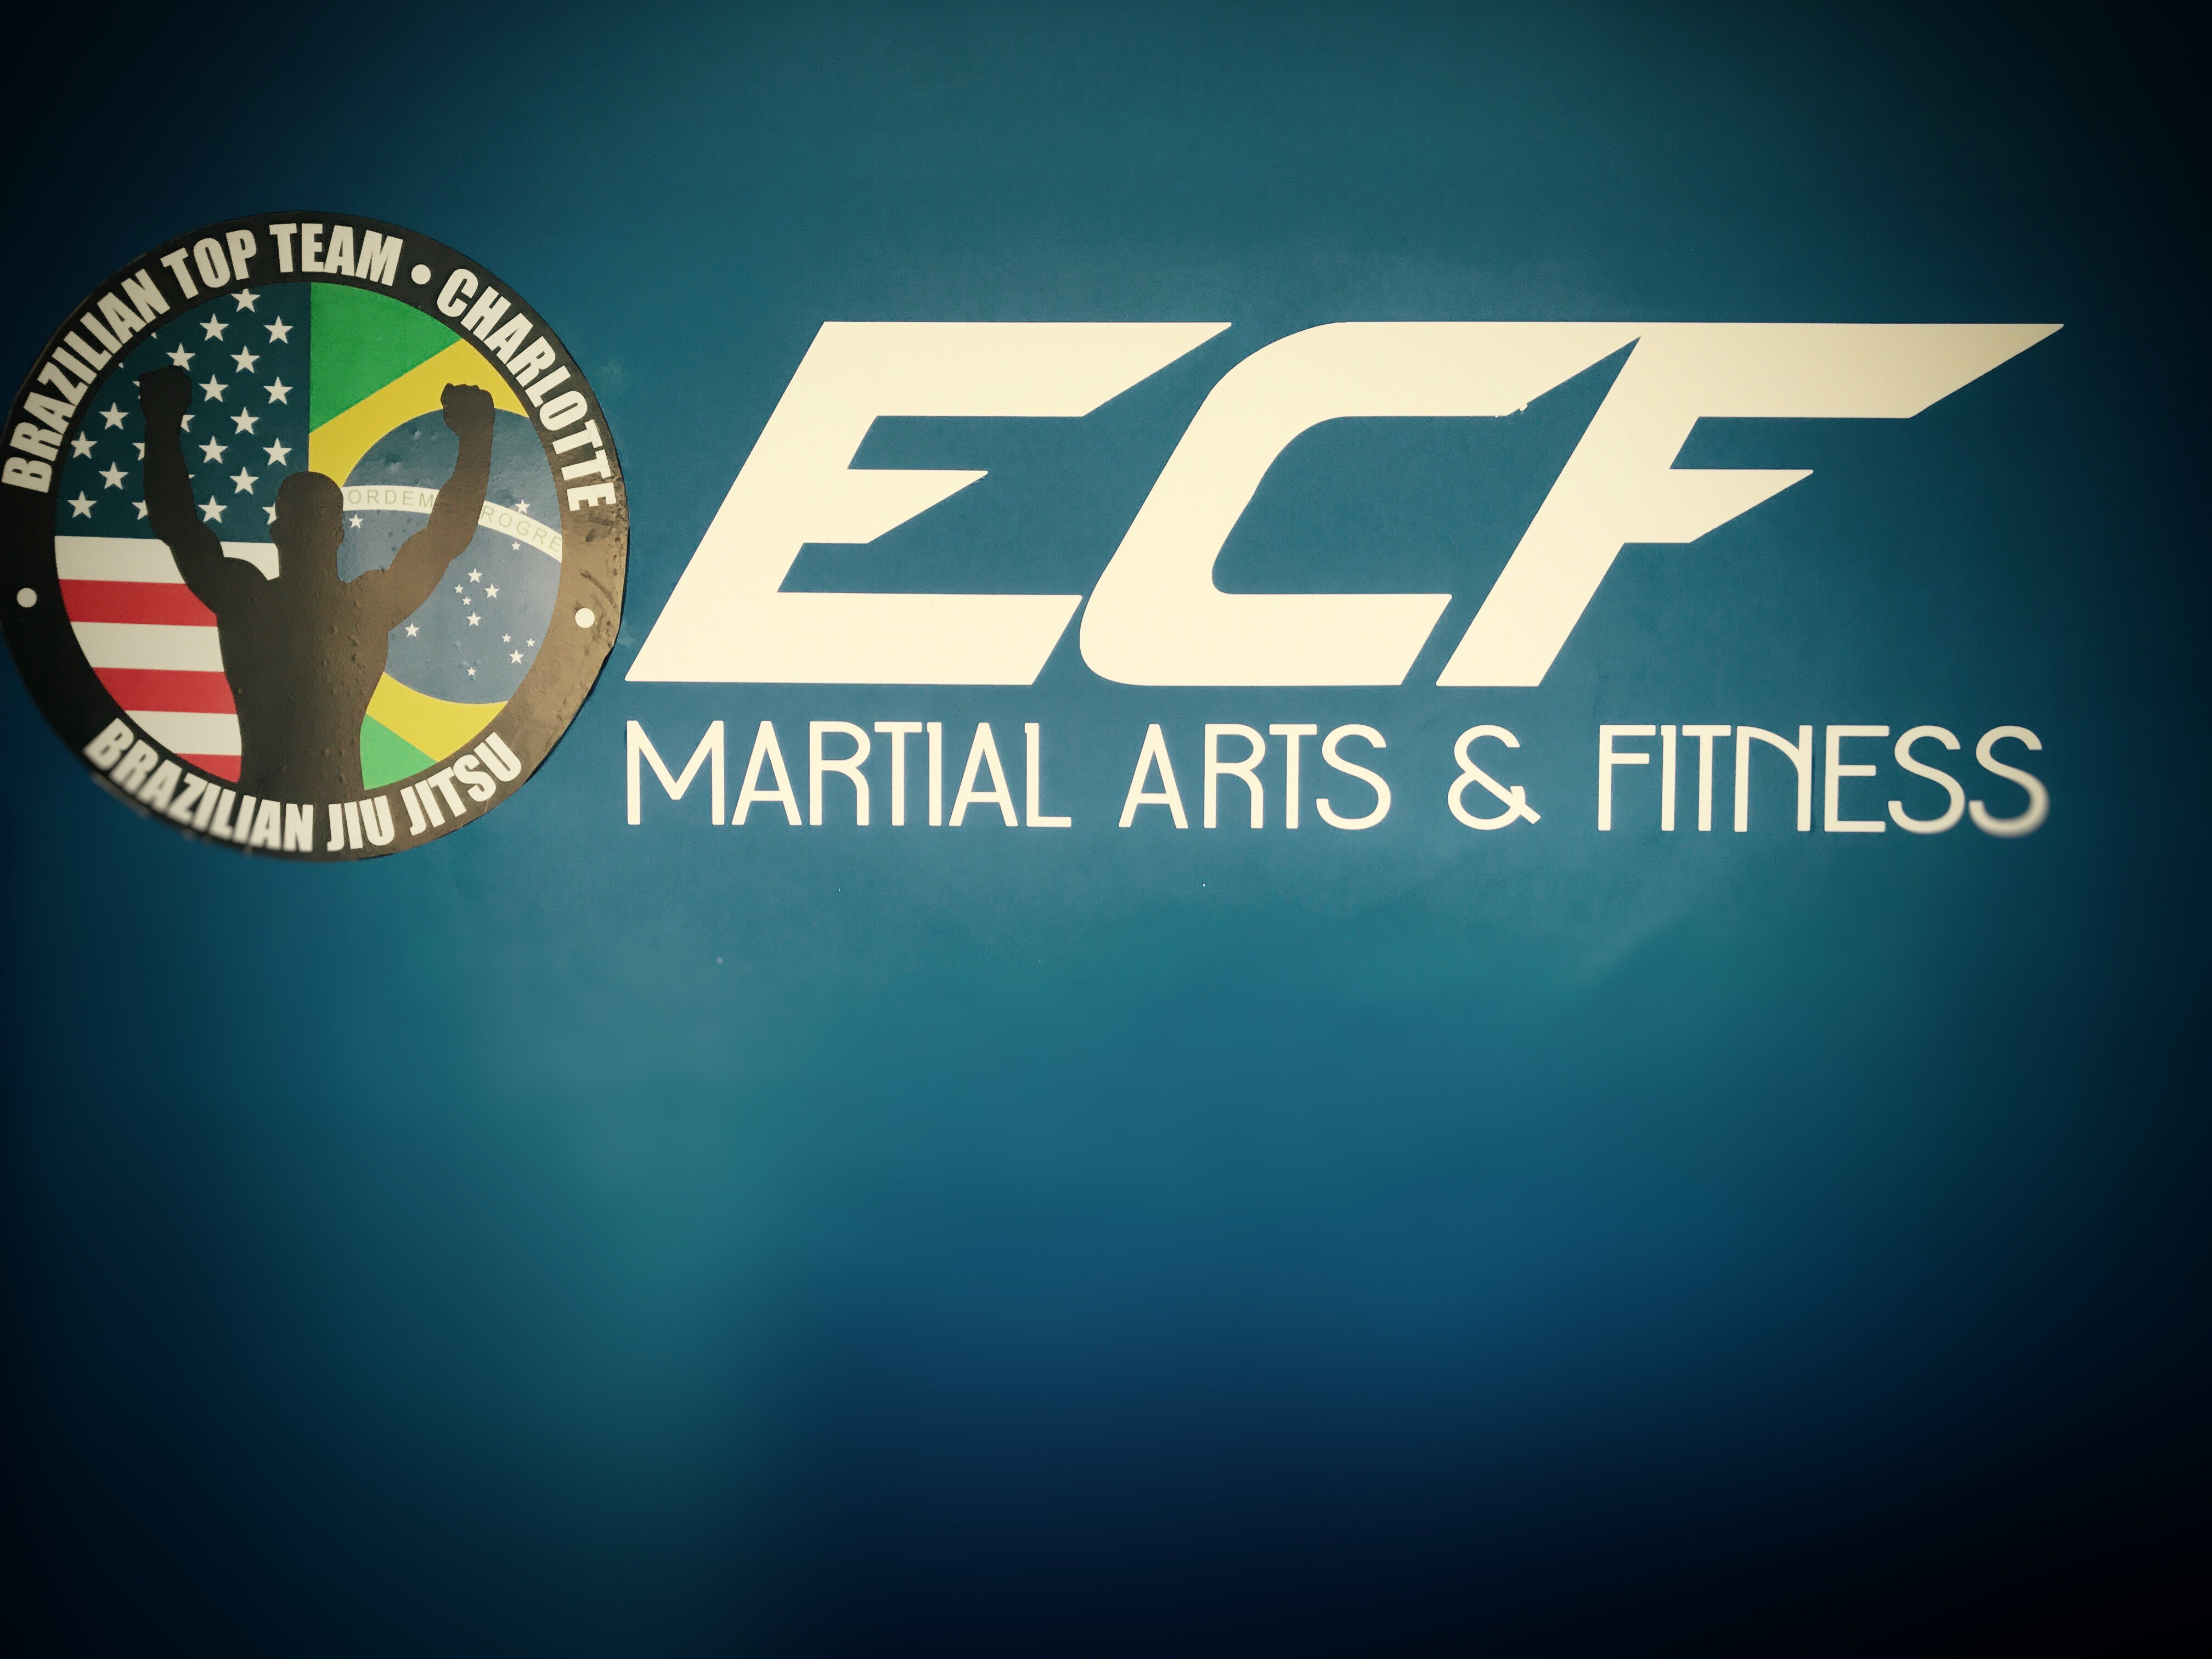 East Coast Fighter Martial Arts Fitness Training Charlotte Nc